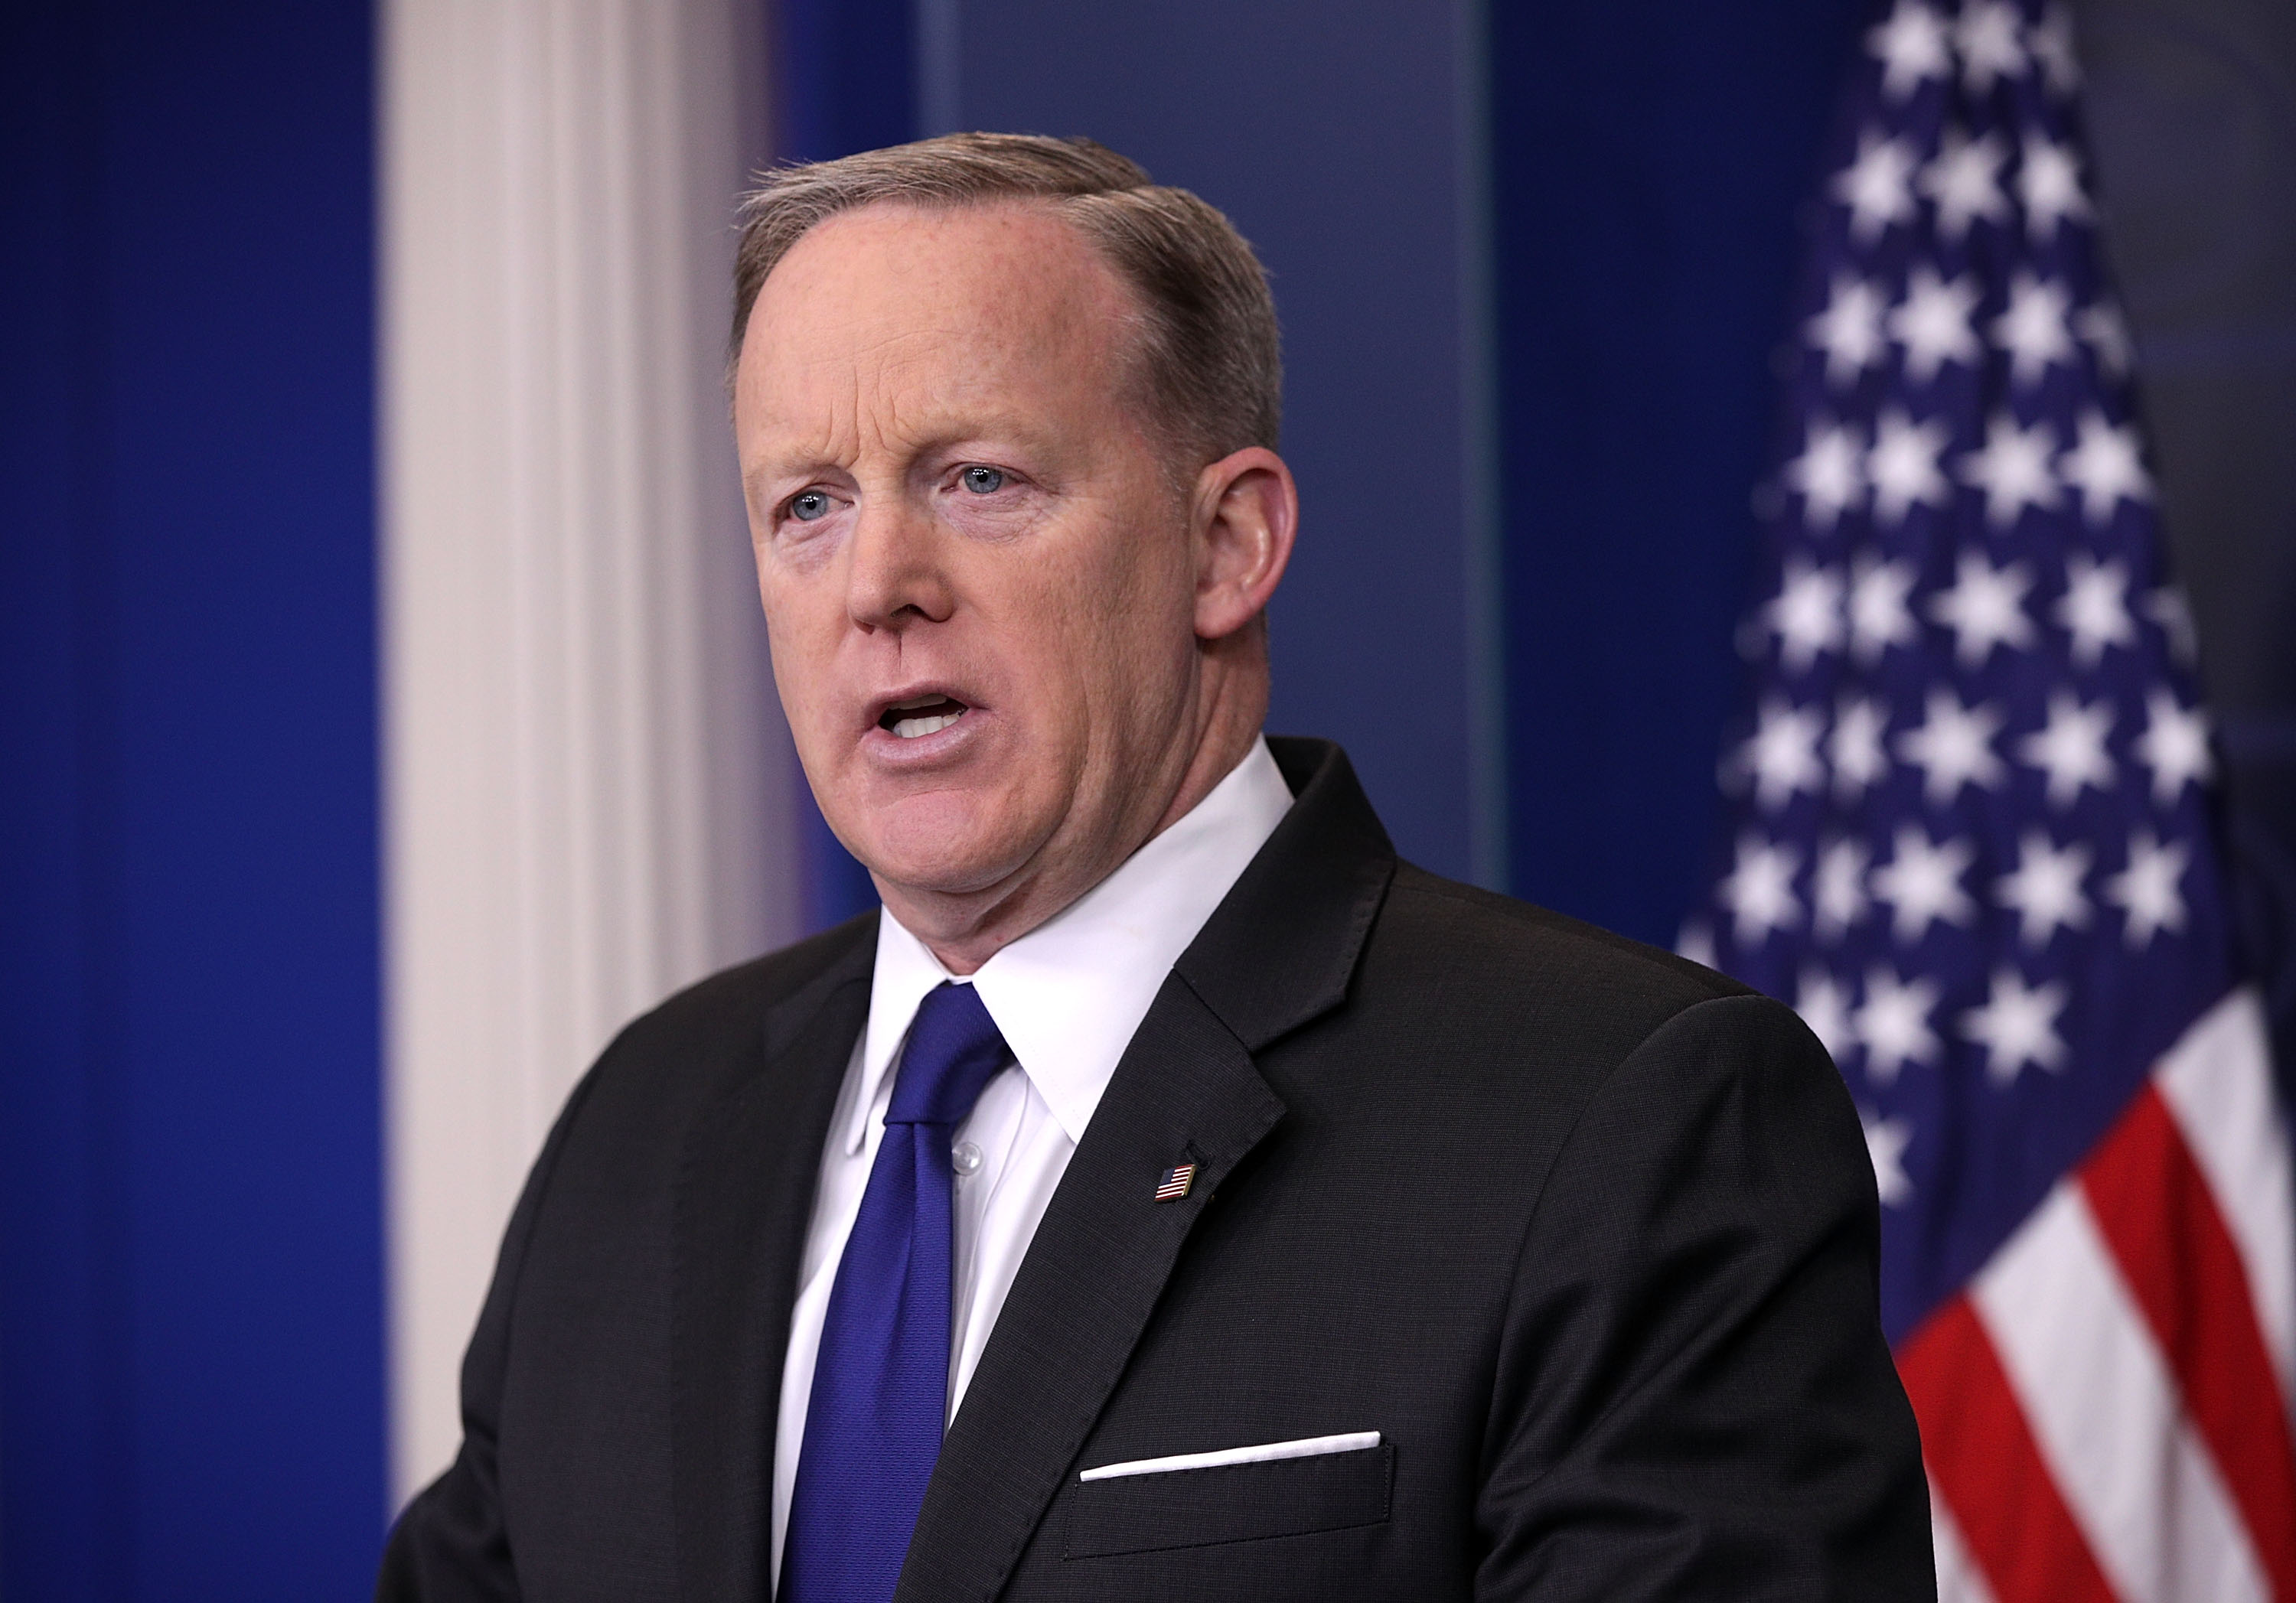 Sean Spicer Holds Daily Press Briefing At White House